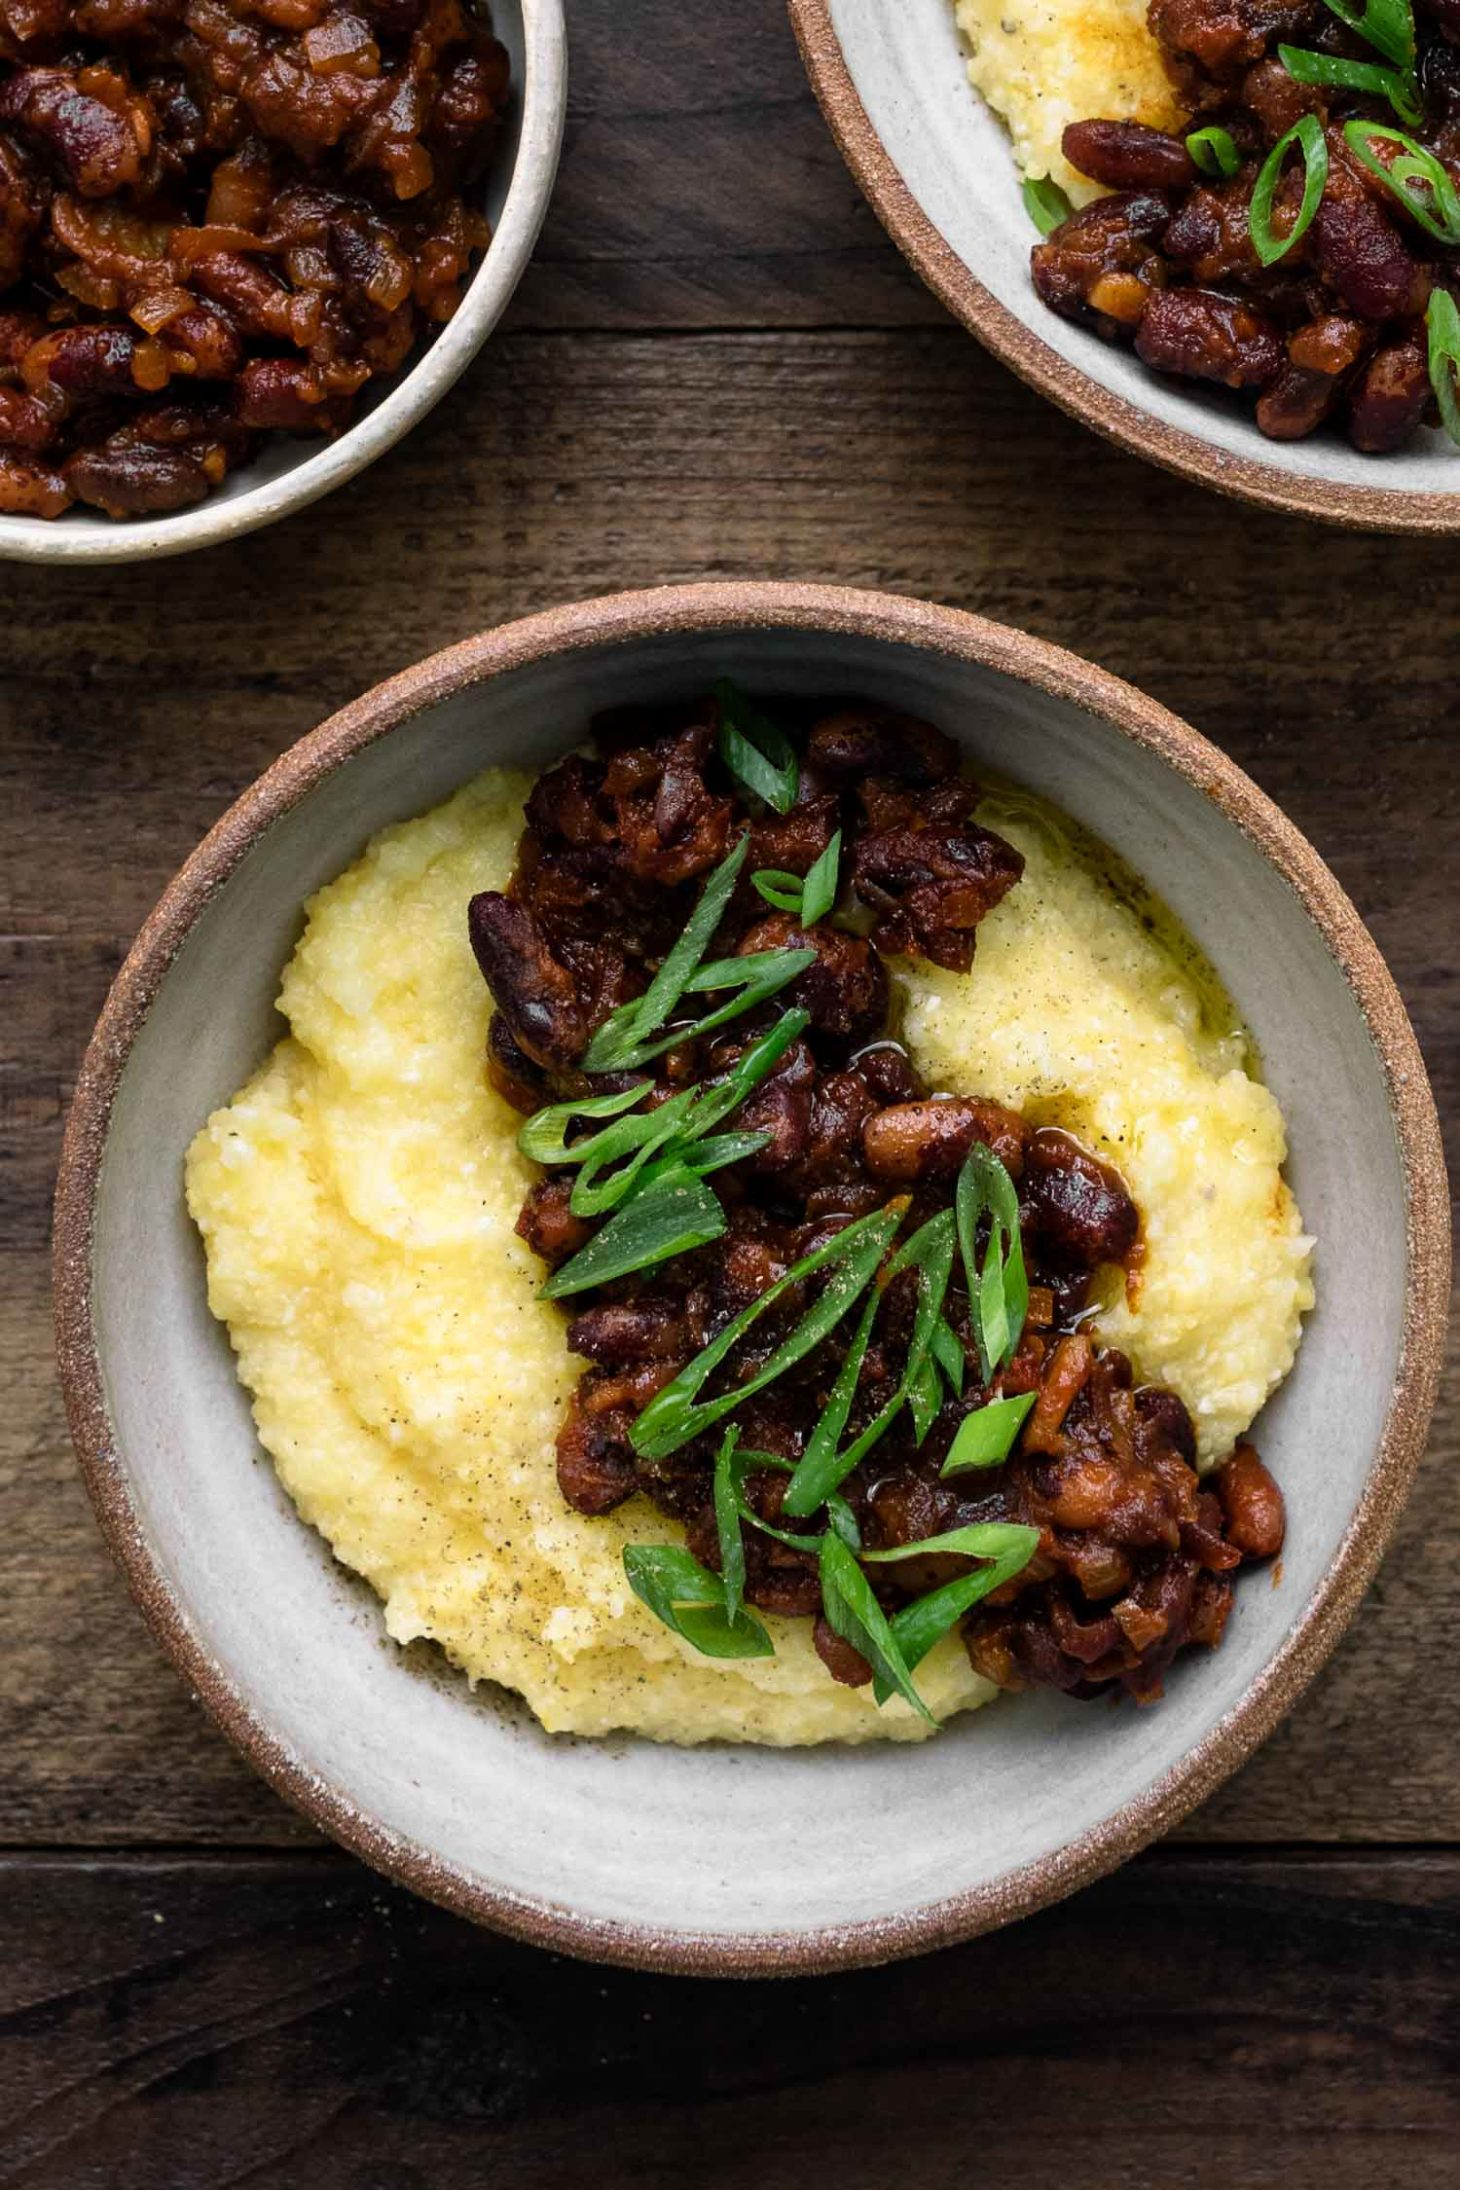 Smoky Beans and Polenta using Jacob's Cattle Beans